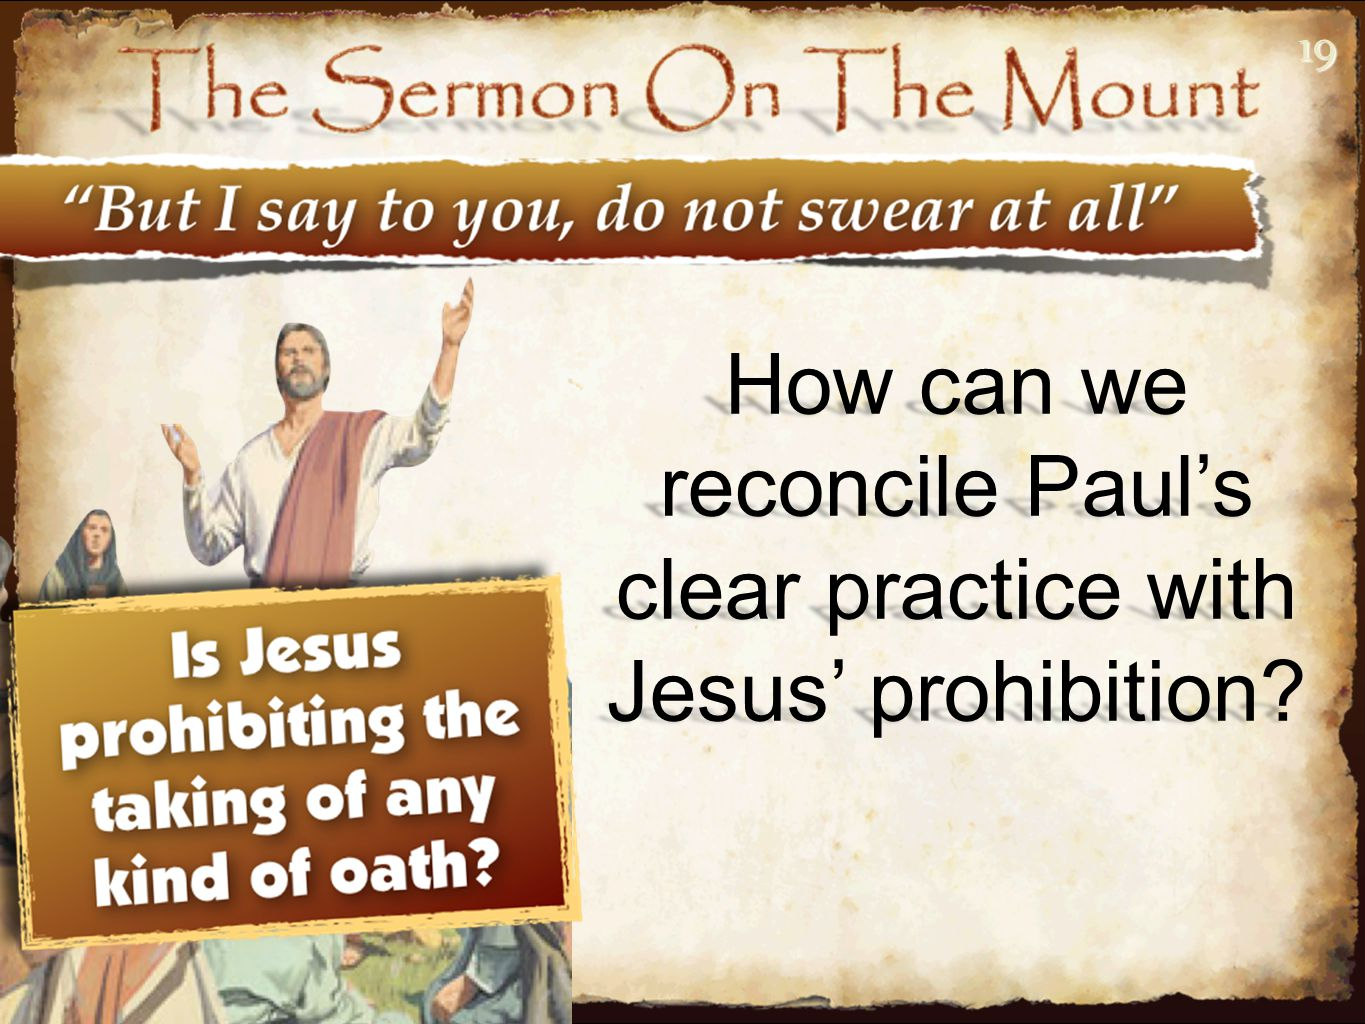 How can we reconcile Paul's clear practice with Jesus' prohibition